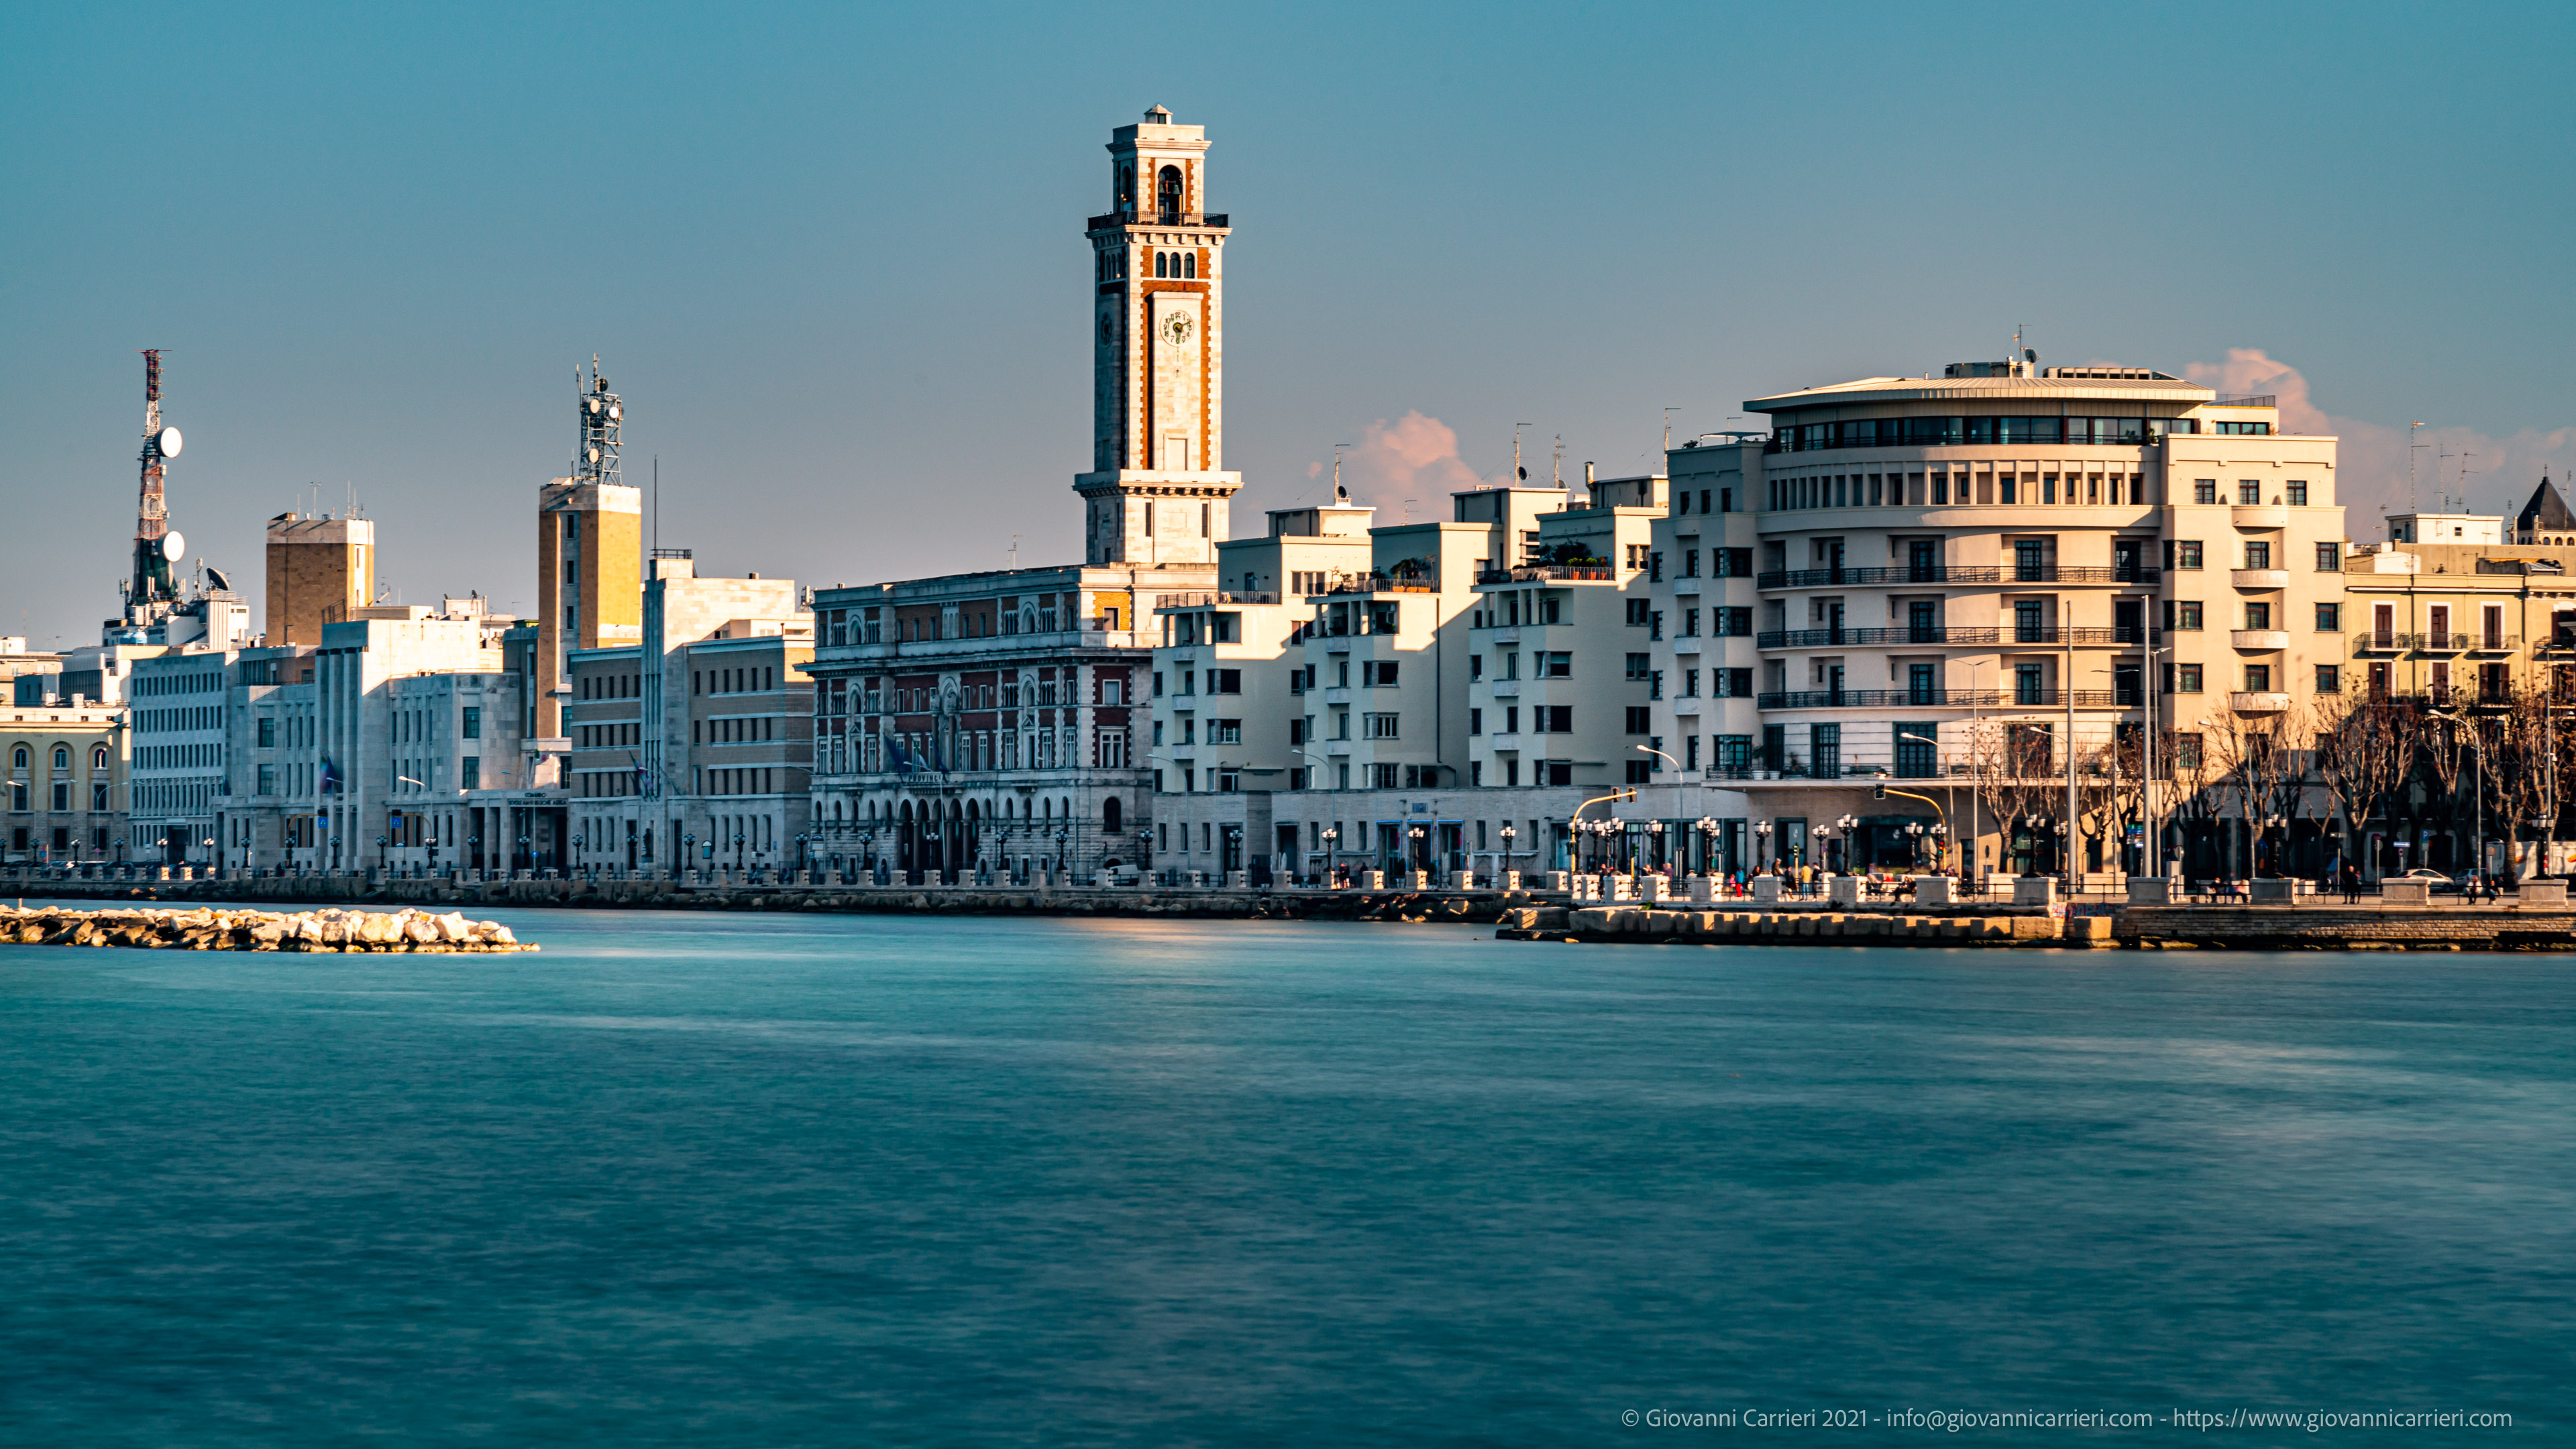 The waterfront of Bari, the spring Afternoon view of the Bari waterfront during the afternoon of March 28, 2021